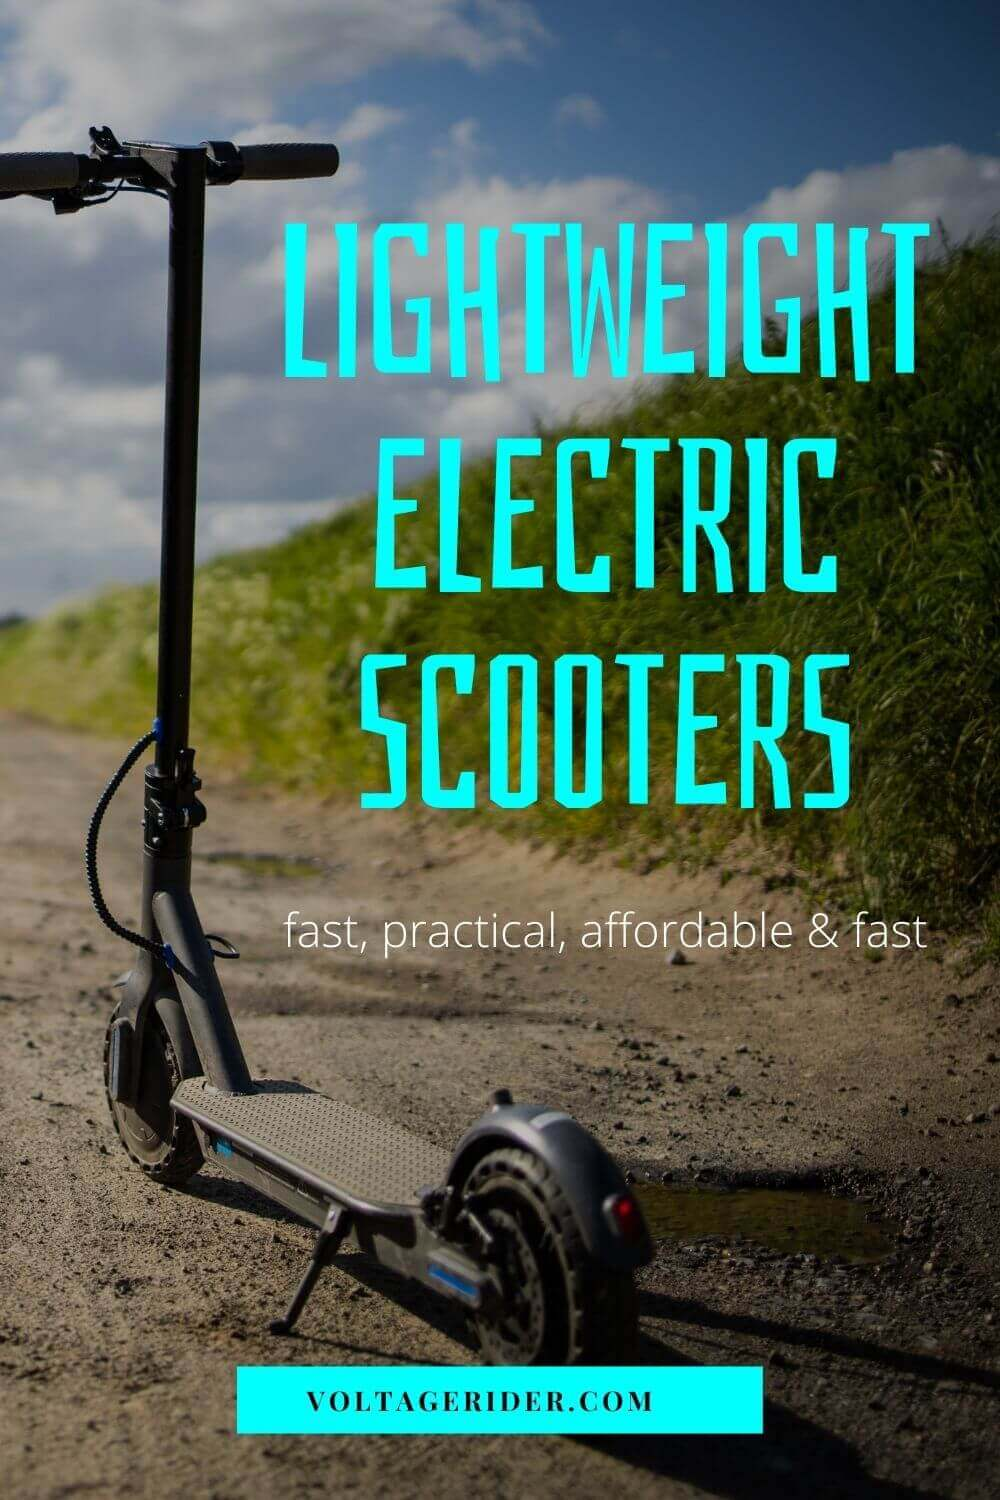 Lightweight electric scooters for all